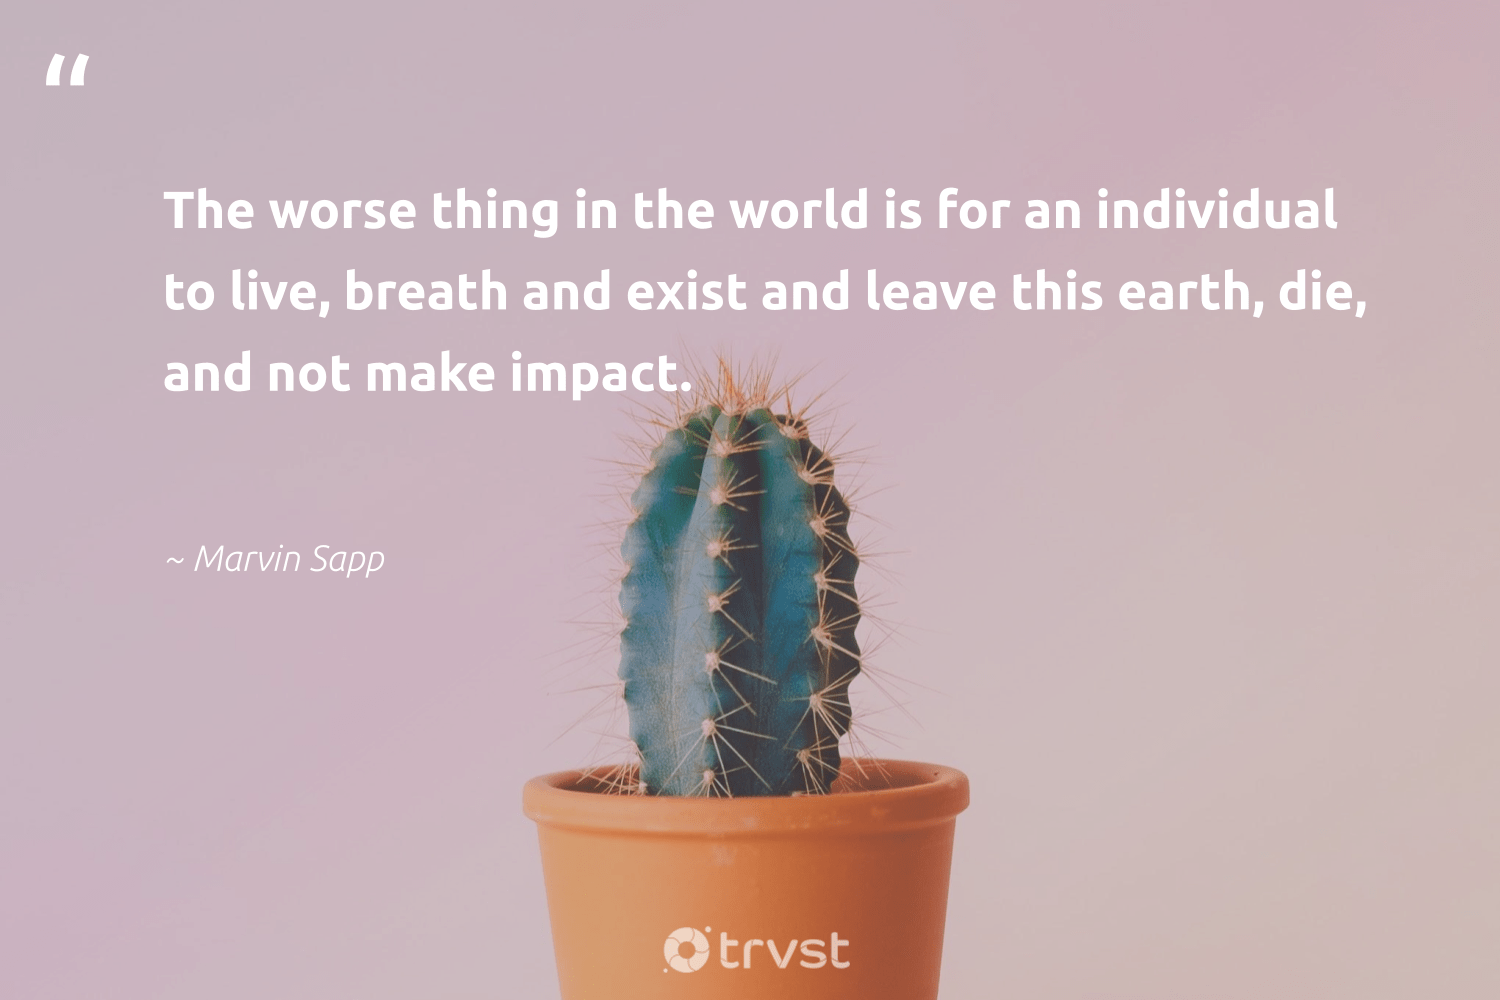 """""""The worse thing in the world is for an individual to live, breath and exist and leave this earth, die, and not make impact.""""  - Marvin Sapp #trvst #quotes #impact #earth #environment #giveback #eco #planetearthfirst #conservation #betterplanet #wildernessnation #takeaction"""